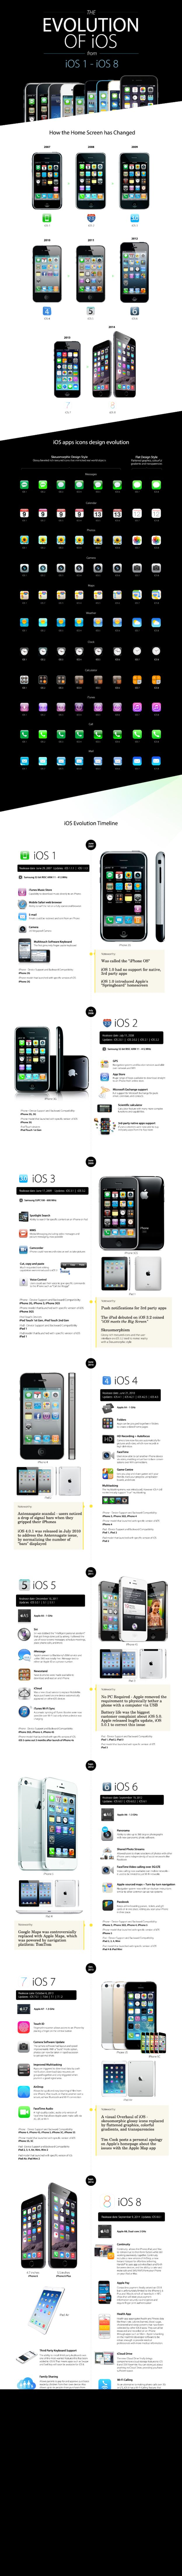 This amazing graphic shows iOS's evolution from original iPhone to iPhone 6